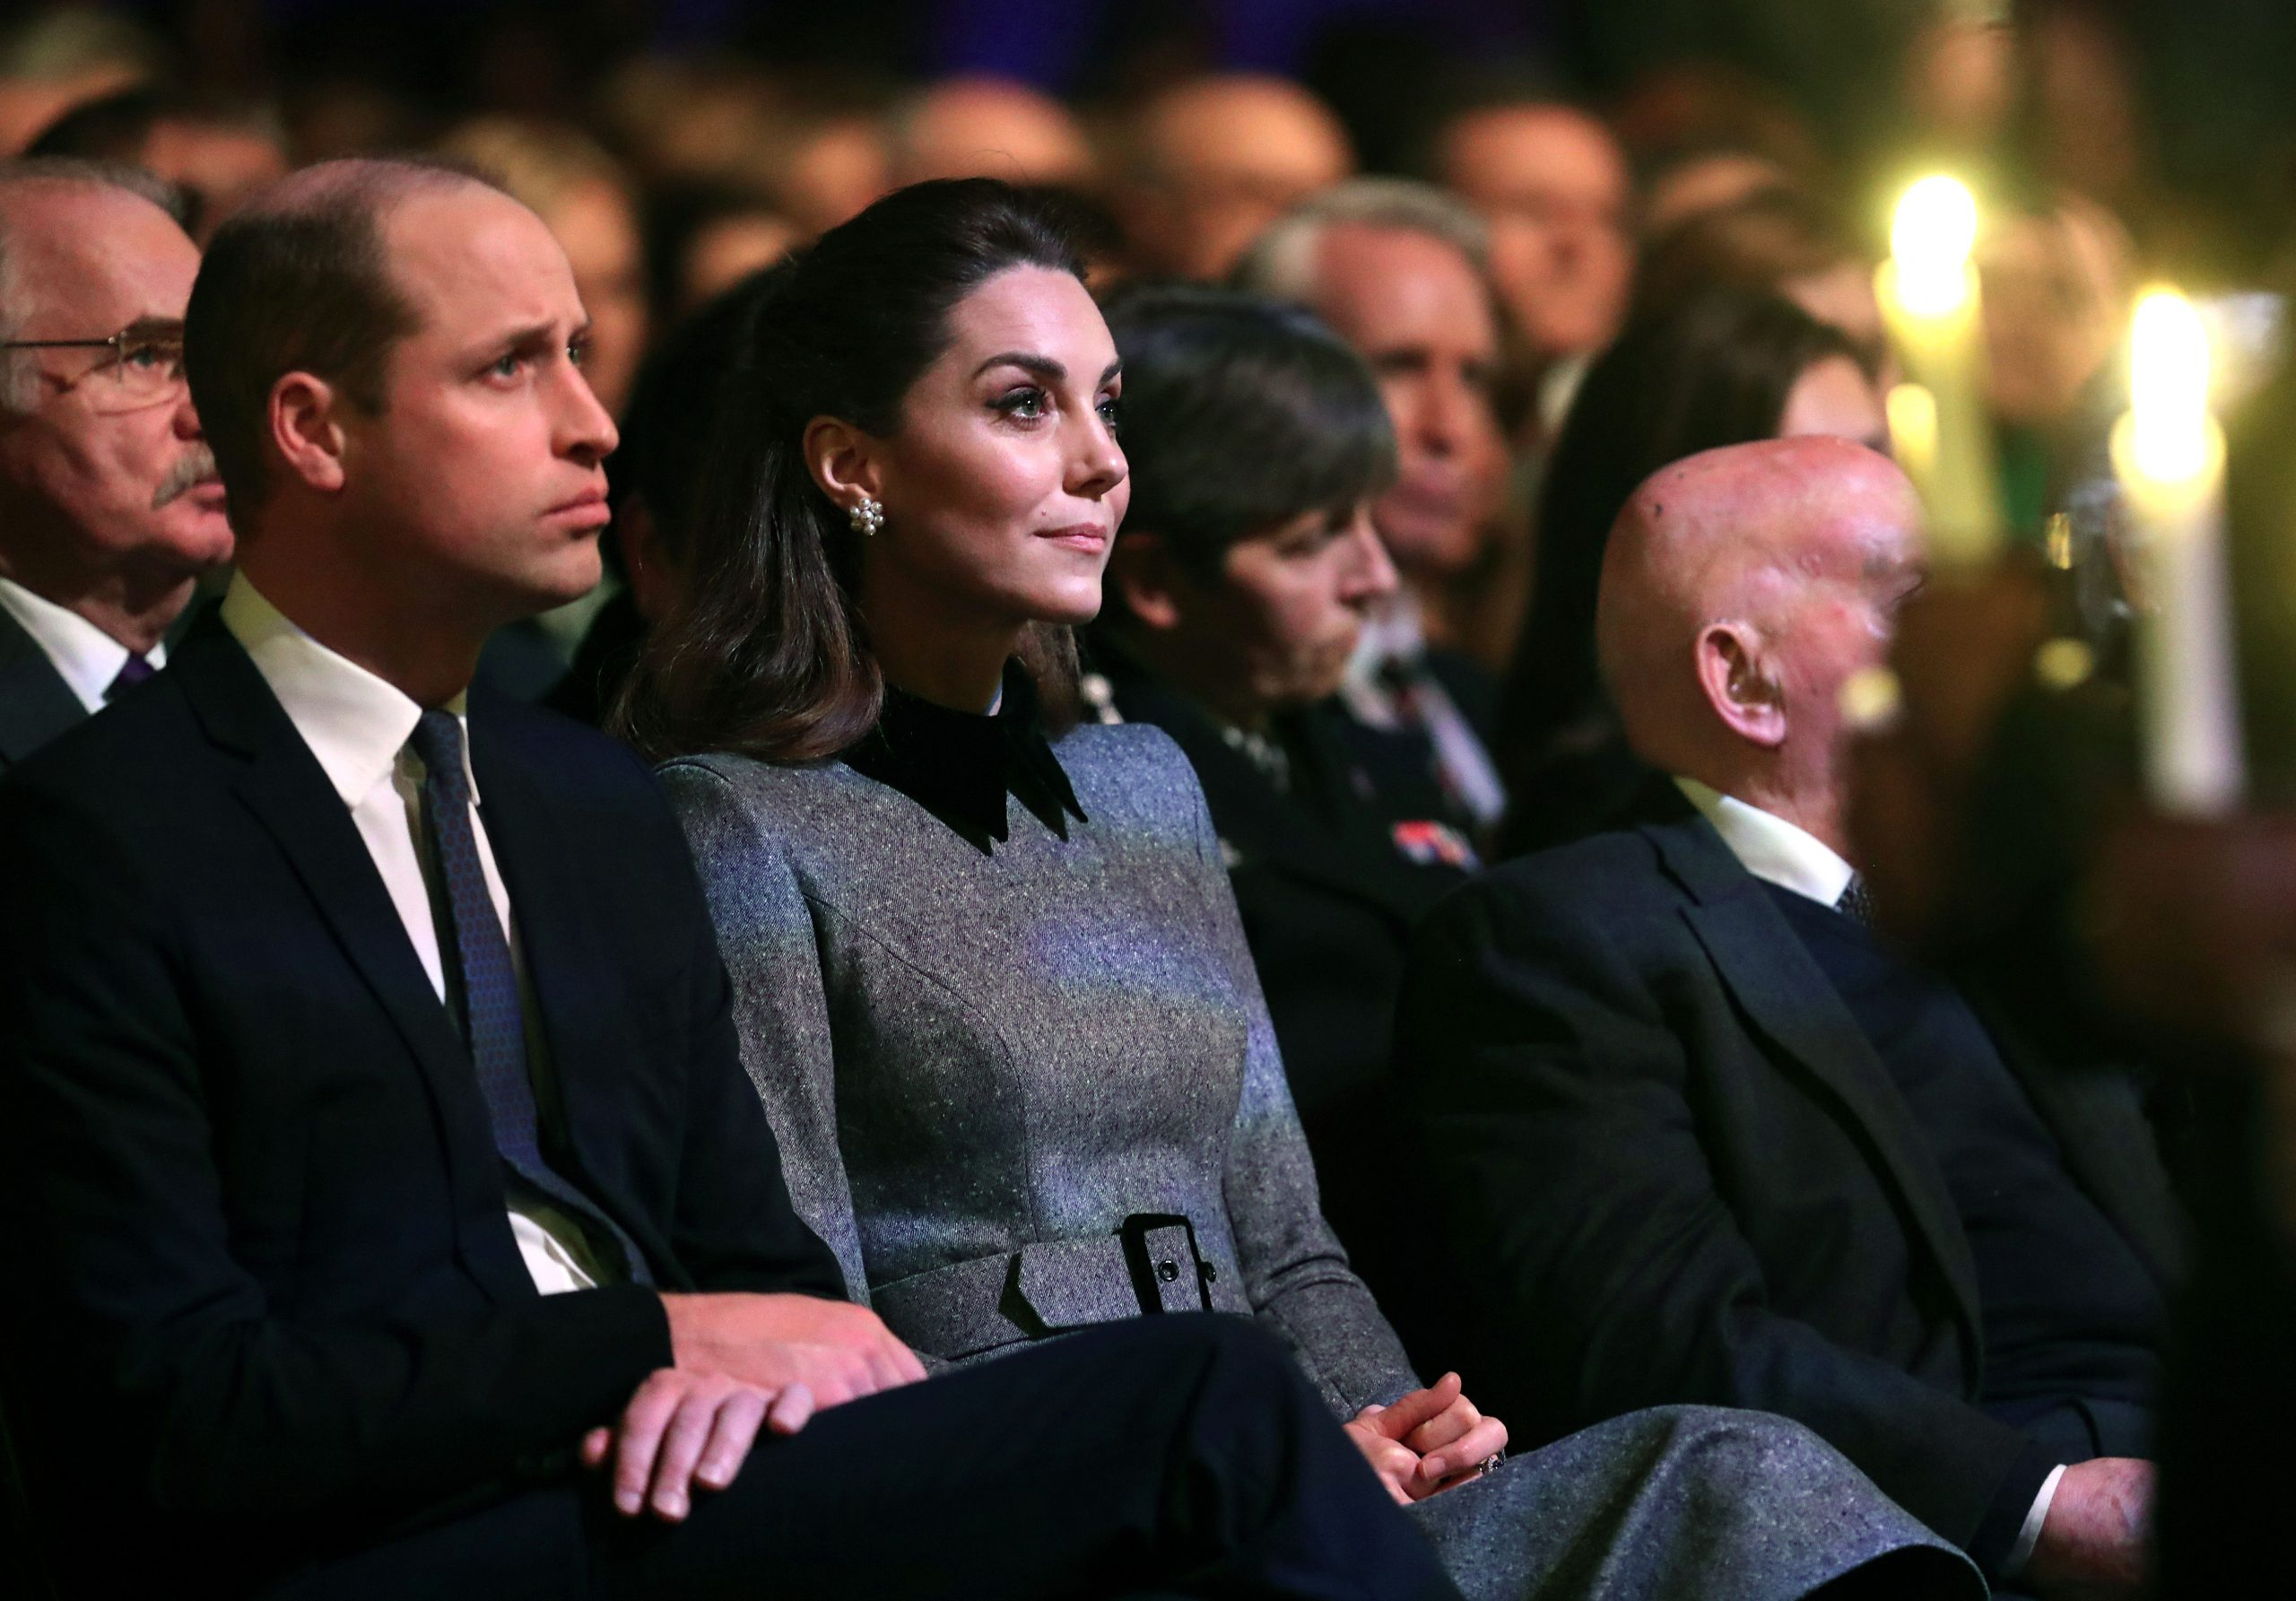 Prince William pays moving tribute to great-grandmother Princess Alice at royal event as Duchess of Cambridge holds back tears